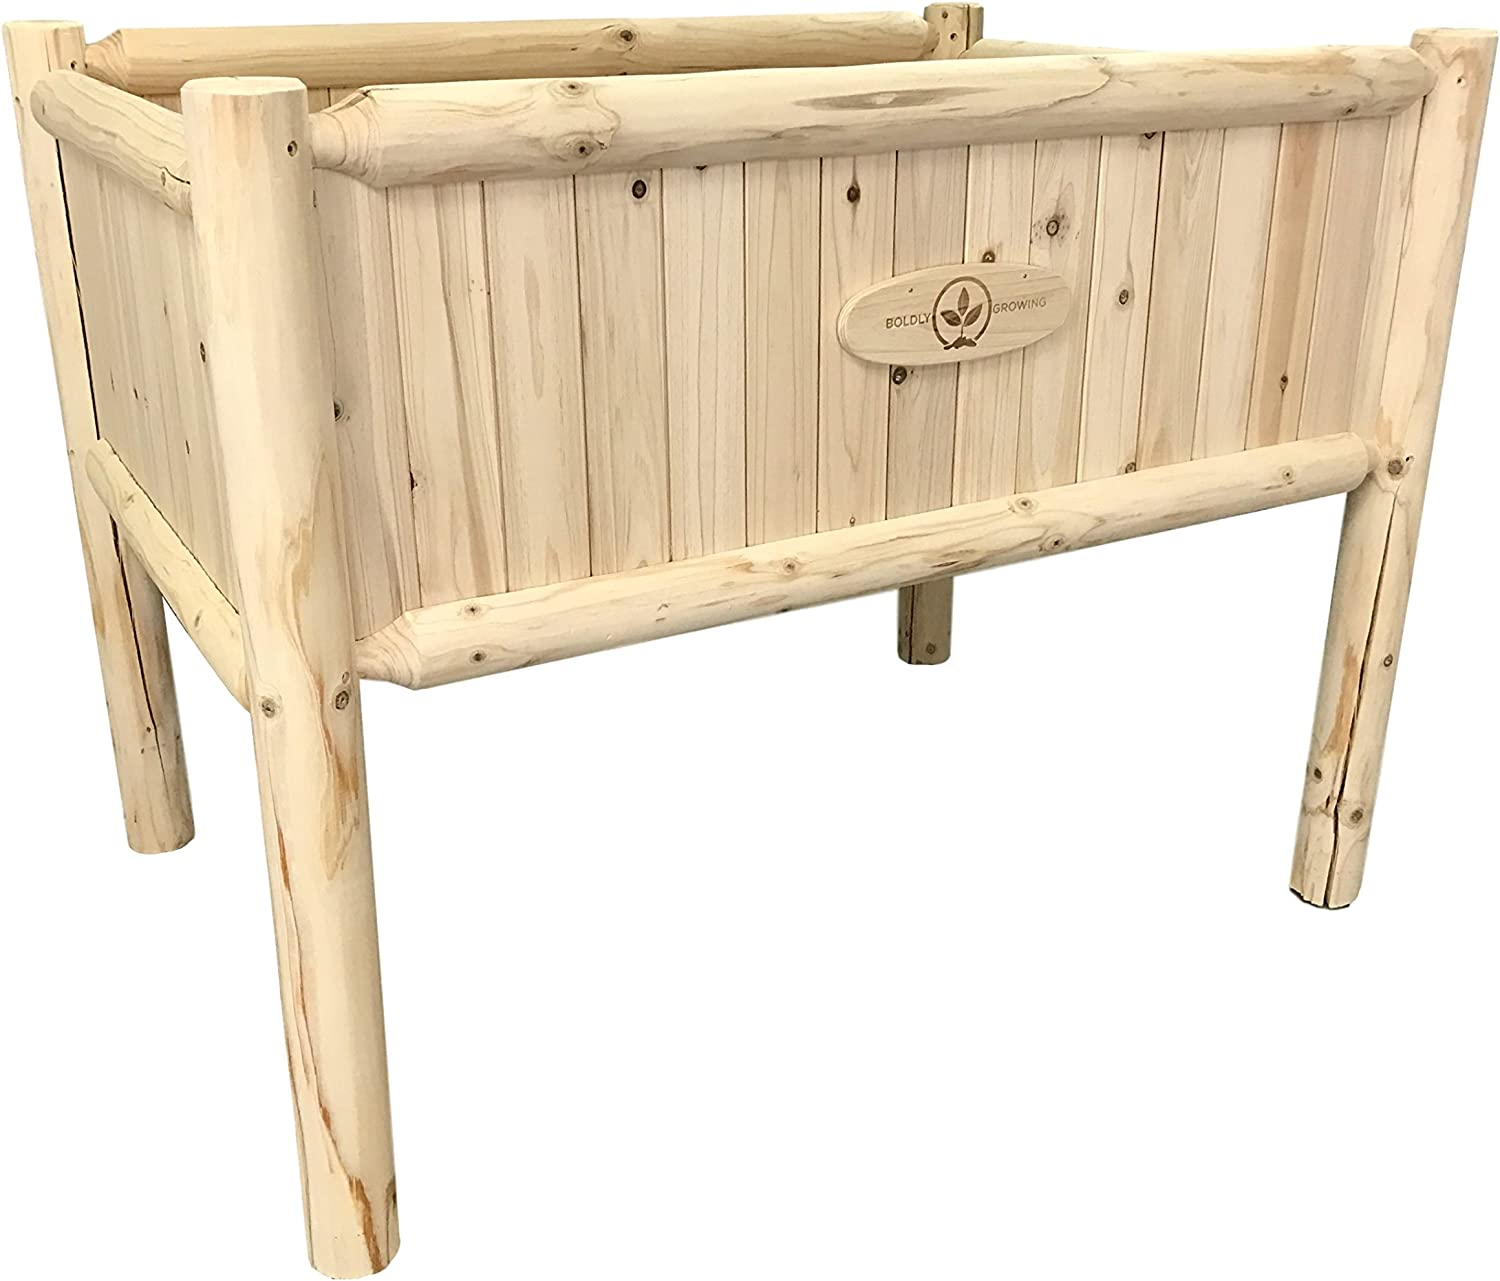 Boldly Growing Raised Planter Box with Legs – Elevated Outdoor Patio Herb Garden Kit to Grow Herbs and Vegetables Tall